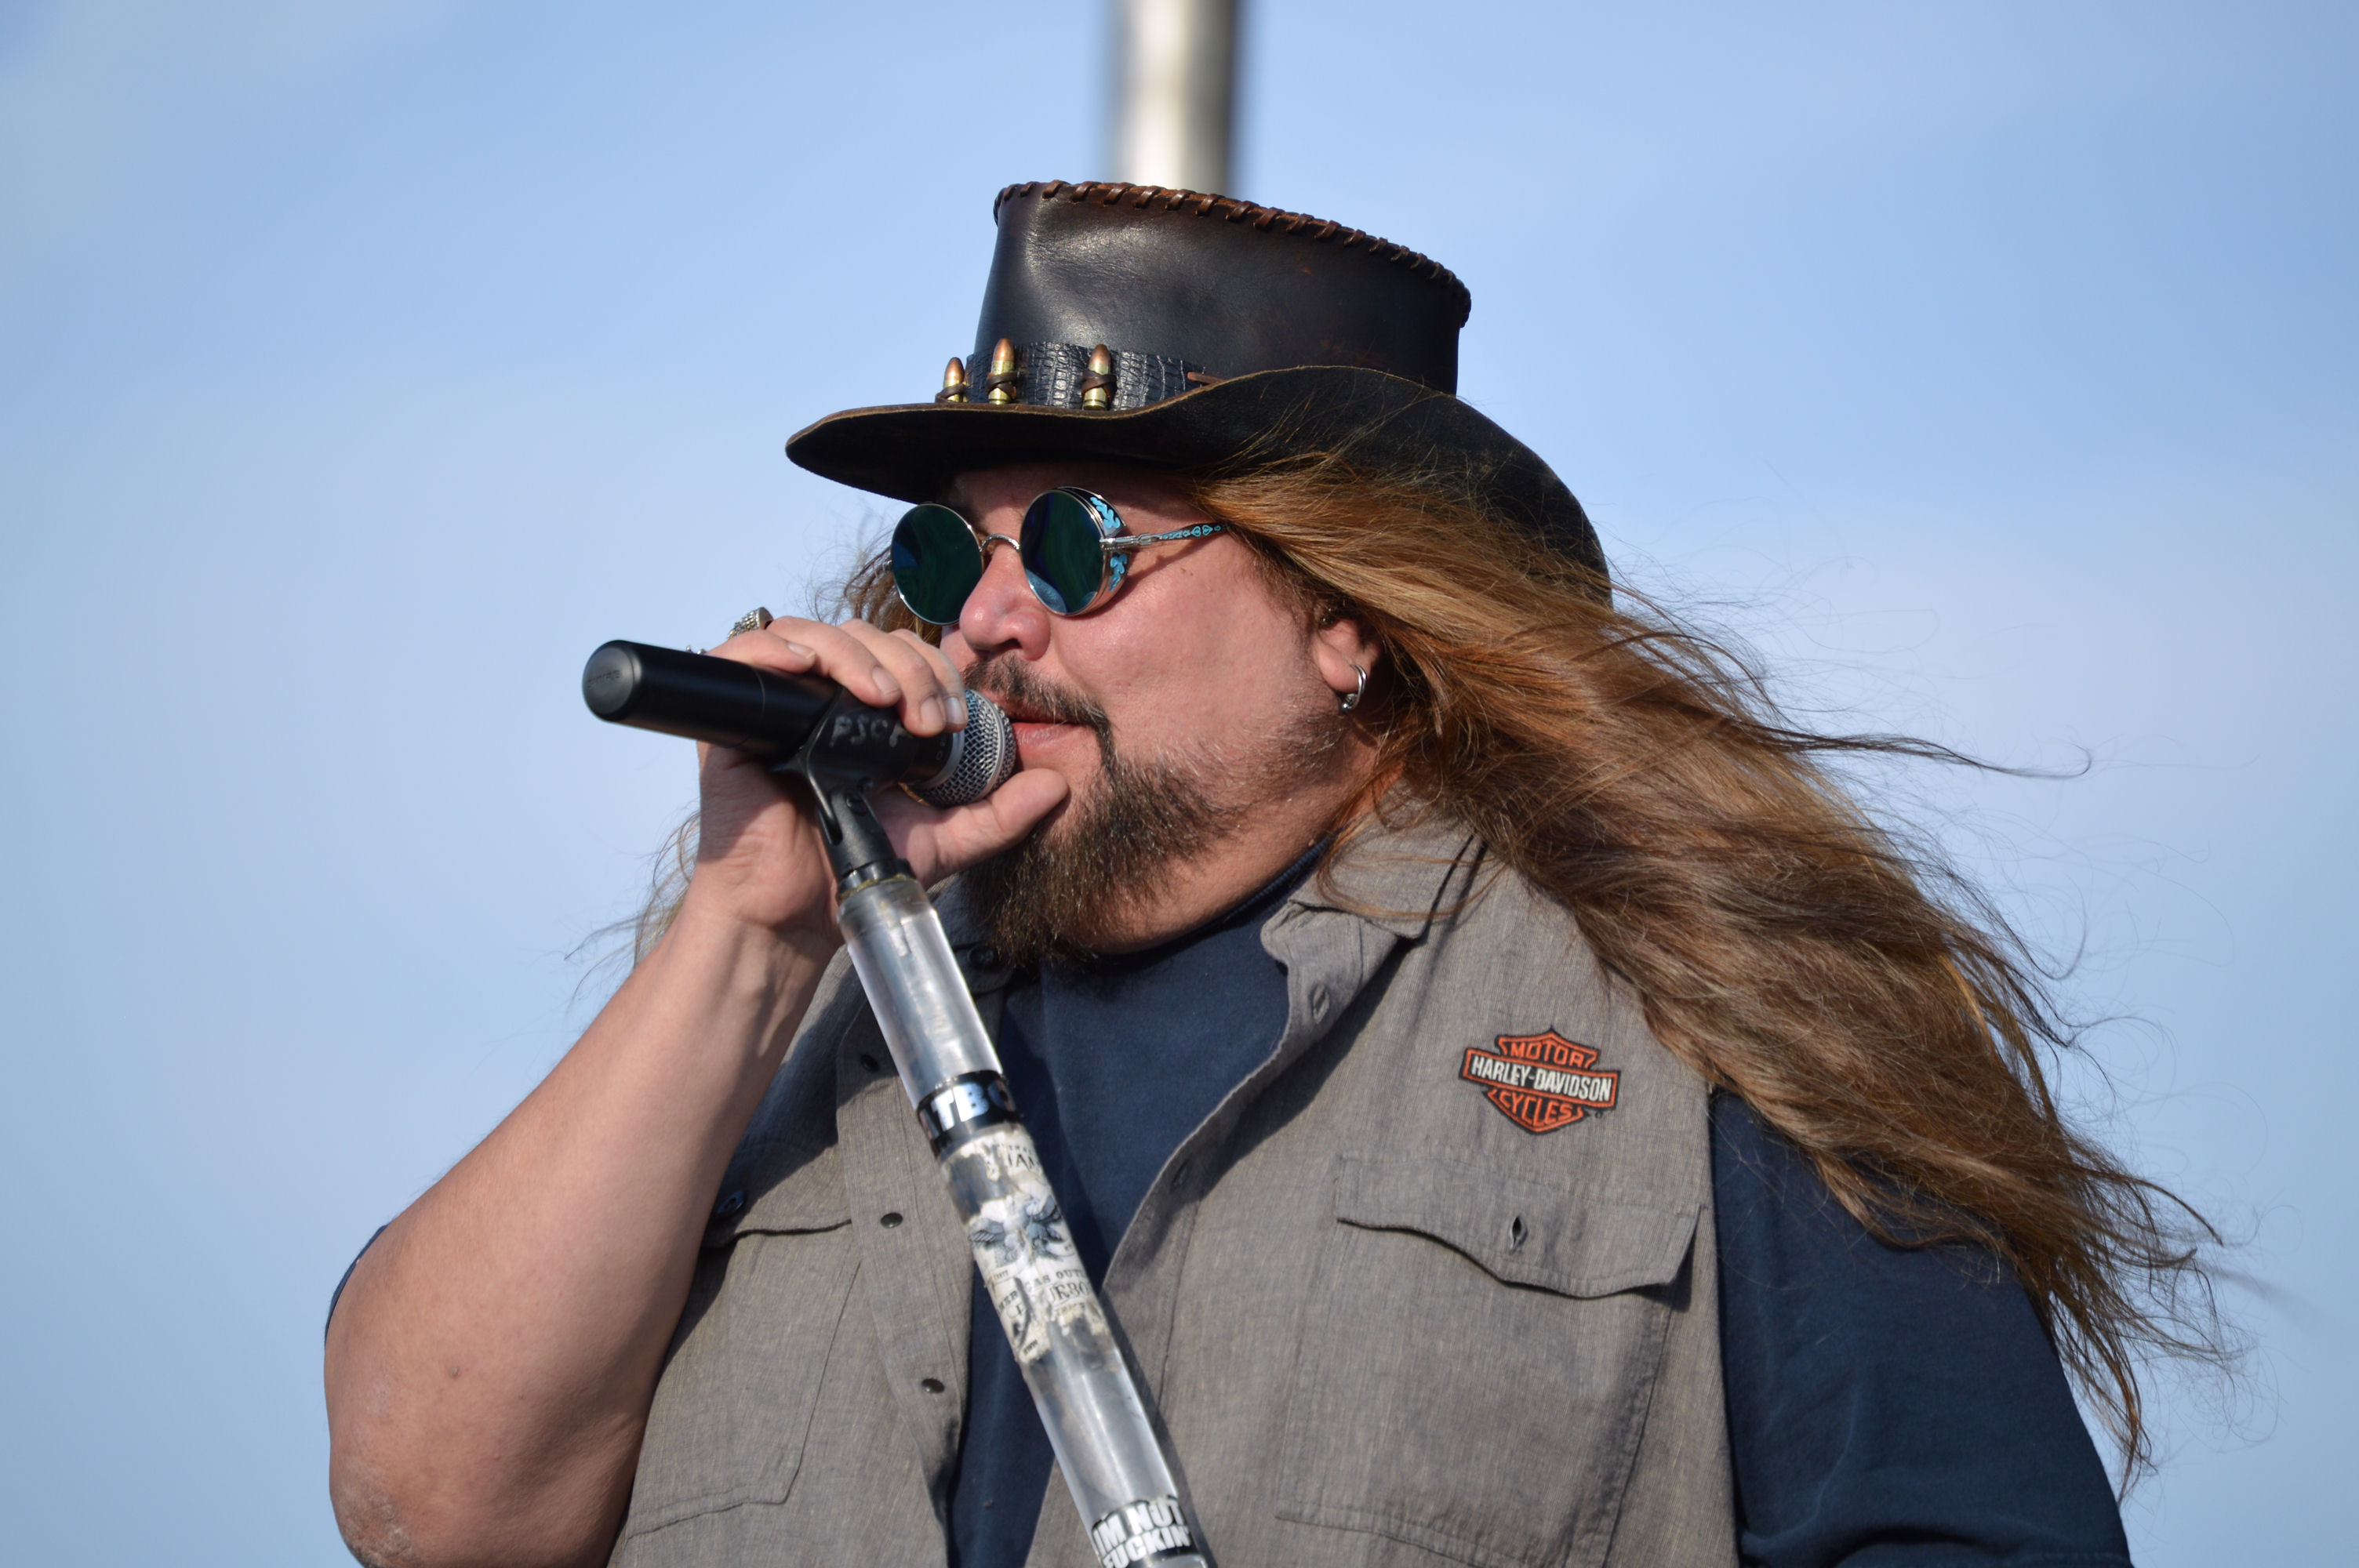 A large man with long blonde hair and a leather hat on sings into a microphone on an acrylic, clear stand